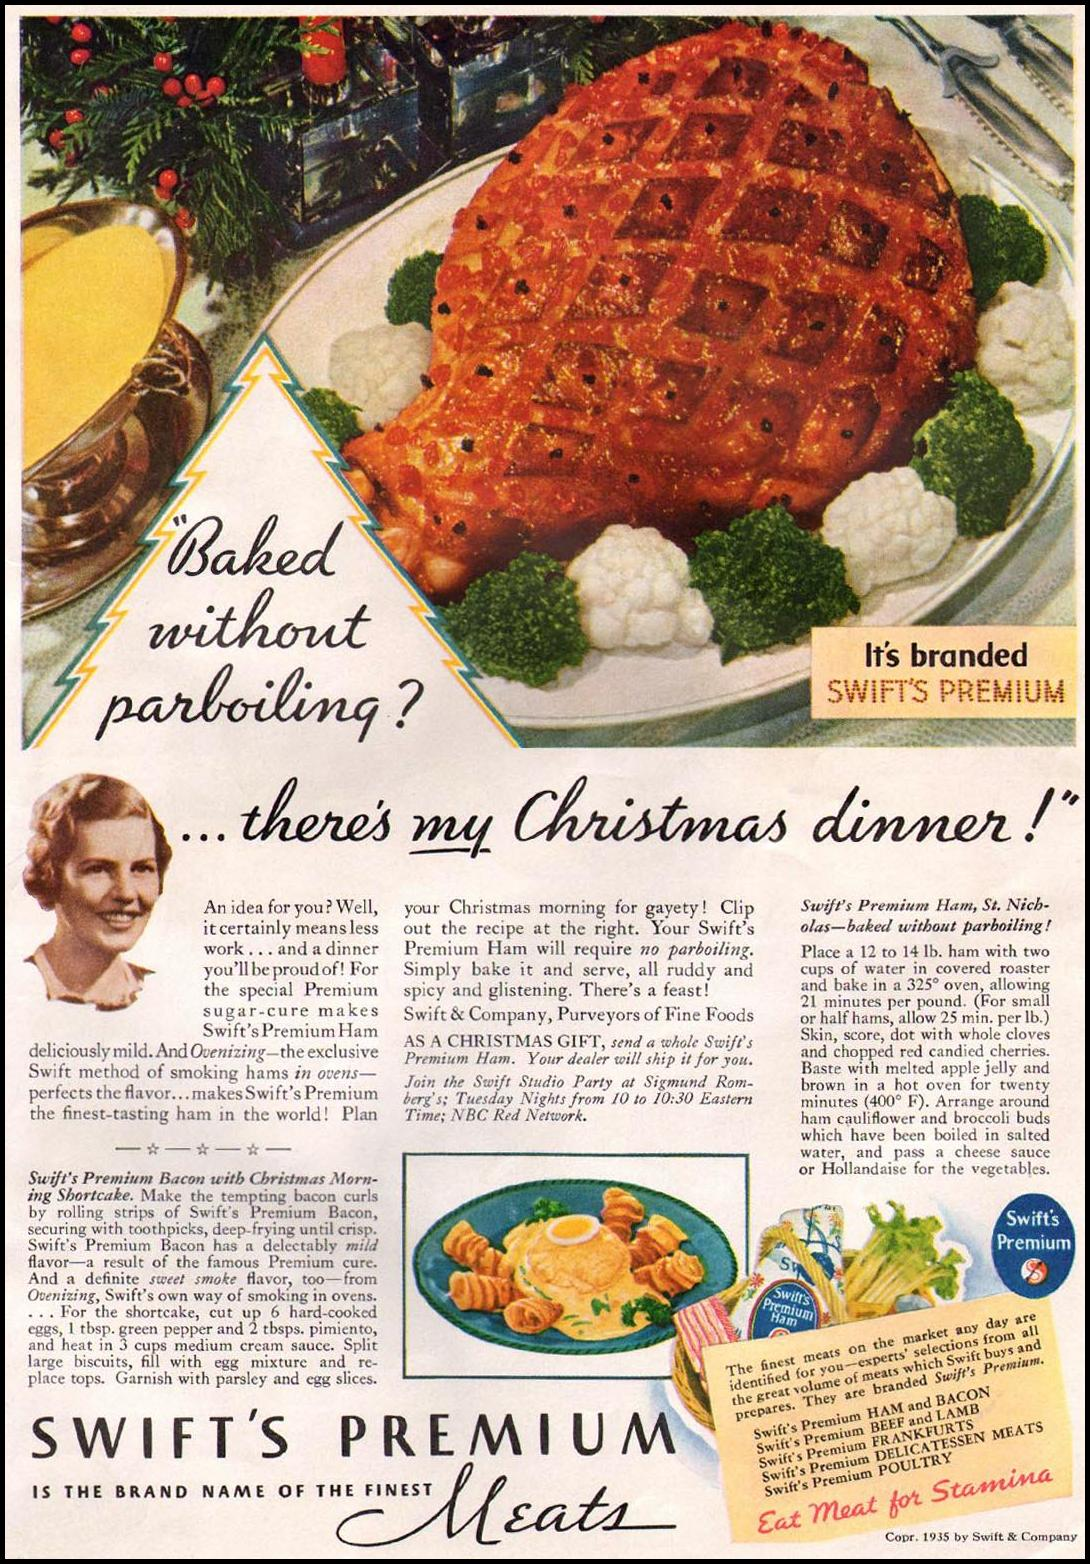 SWIFT'S PREMIUM MEATS